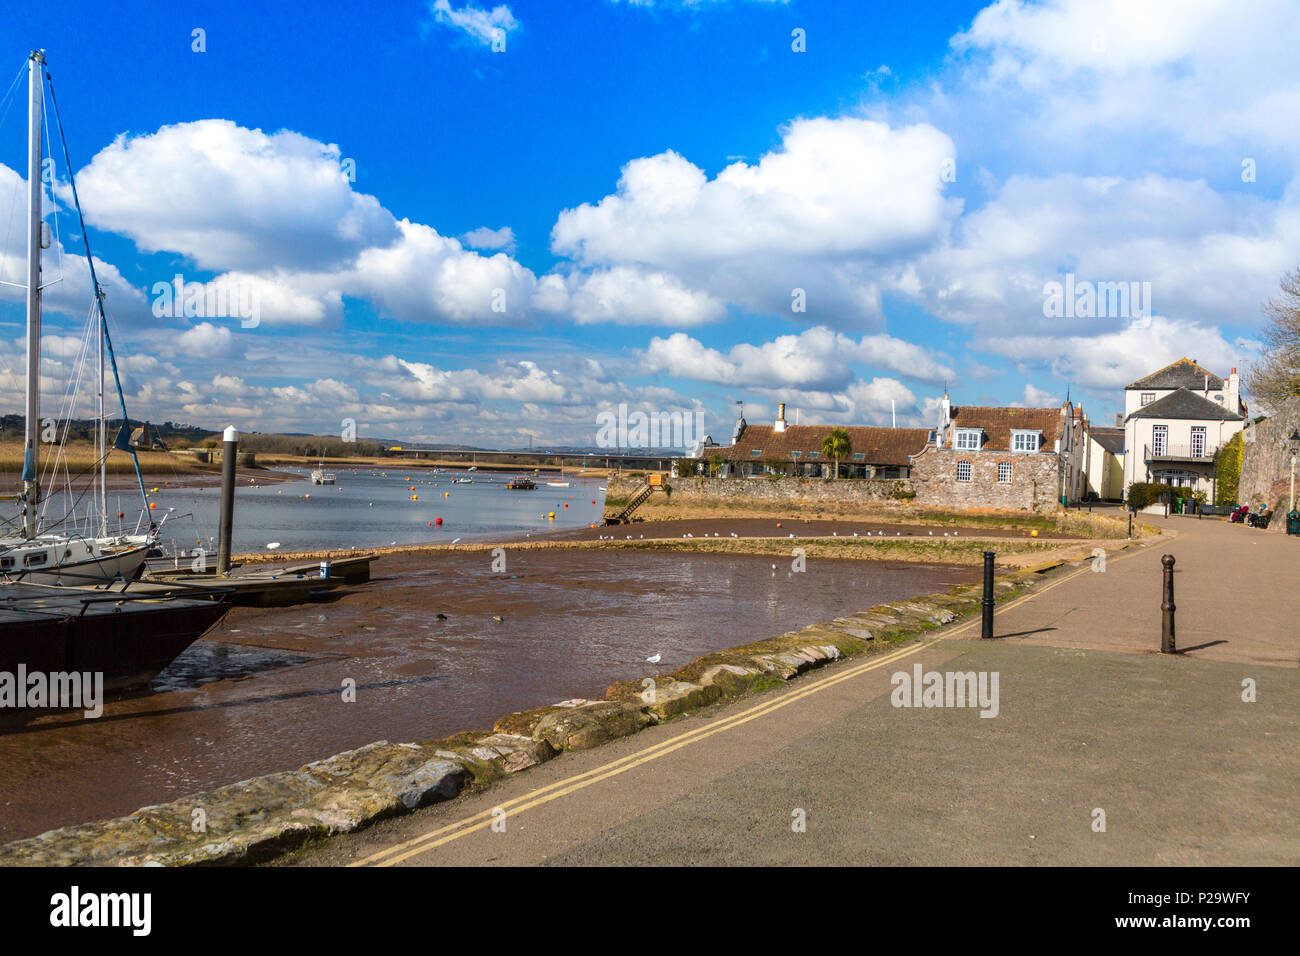 The waterfront of the River Exe at low tide at Topsham, Devon, England, UK - Stock Image